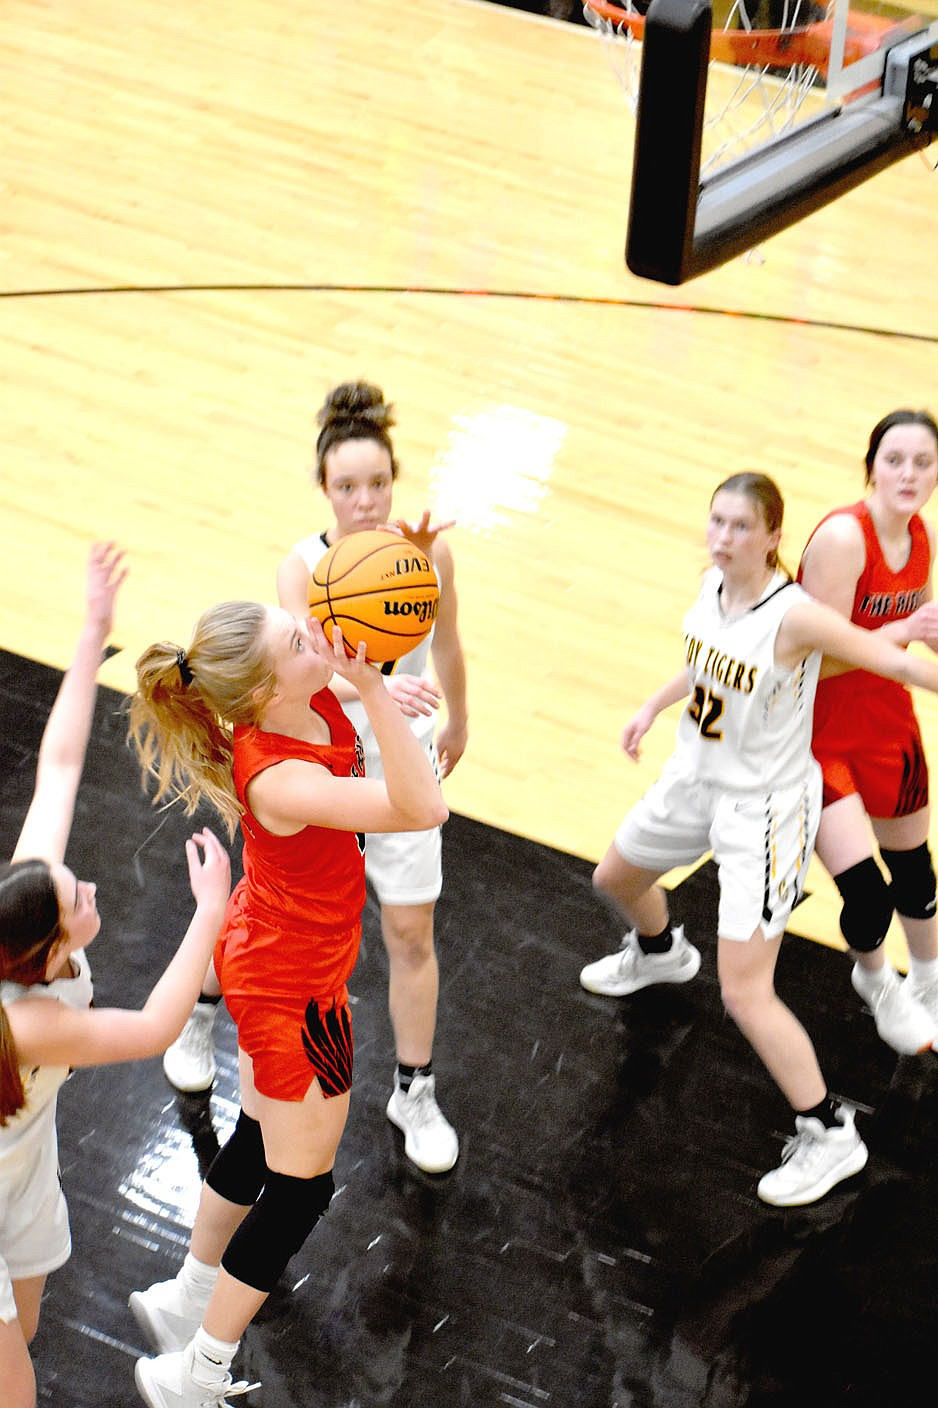 MARK HUMPHREY  ENTERPRISE-LEADER/Pea Ridge junior Lauren Wright finishes a drive by scoring in the lane against Prairie Grove. Wright scored 5 points in the Lady Blackhawks' 65-38 win in 4A-1 Conference girls basketball action at Tiger Arena on Tuesday, Feb. 9.